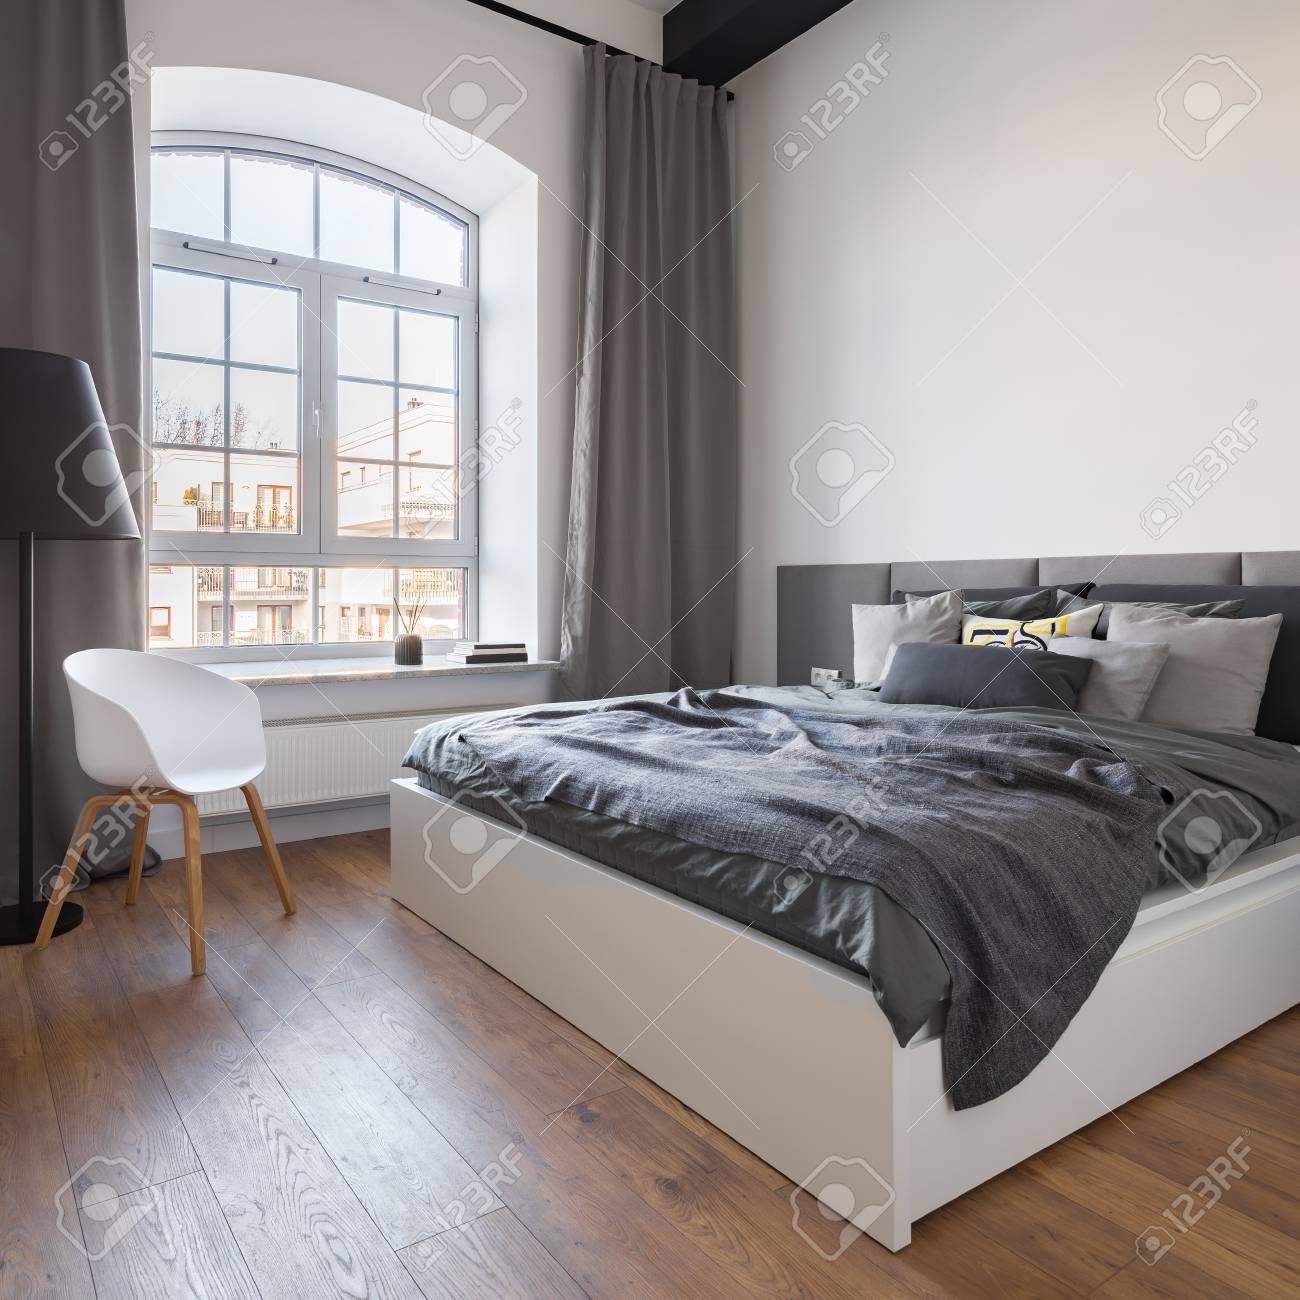 Gray Bedroom With Big Window, Double Bed And White Chair In ...